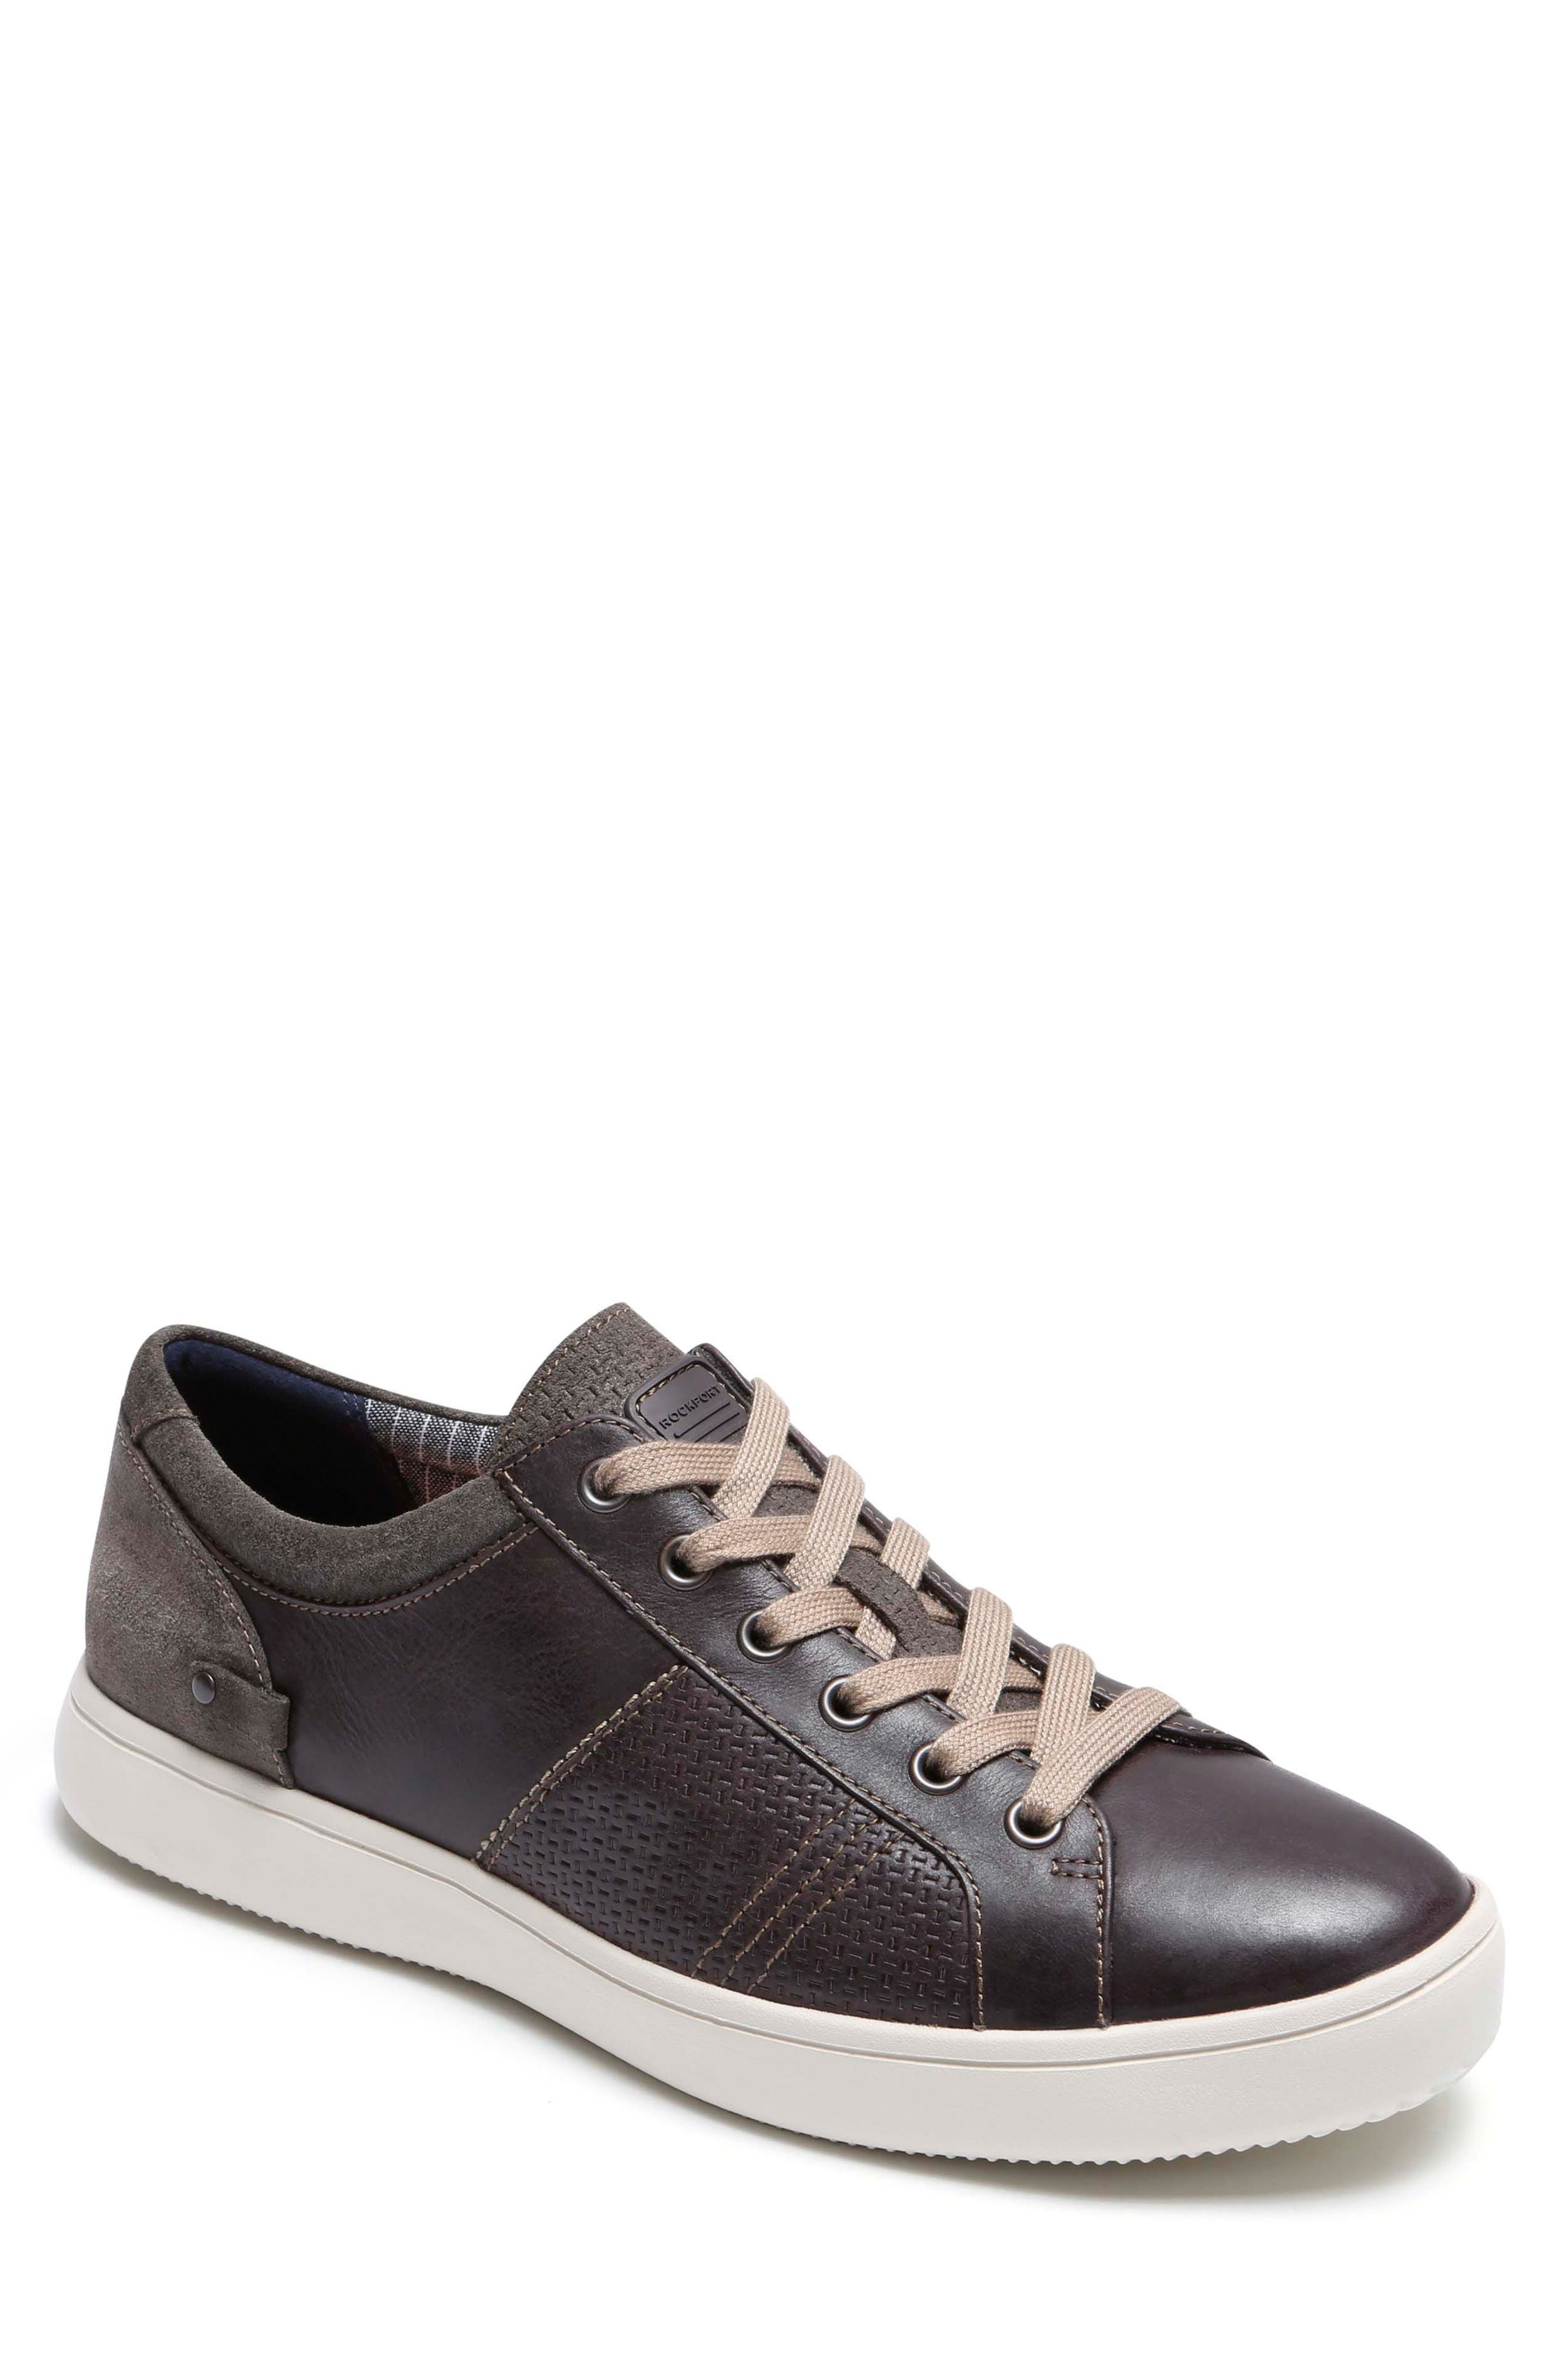 Colle Textured Sneaker,                         Main,                         color, COFFEE LEATHER